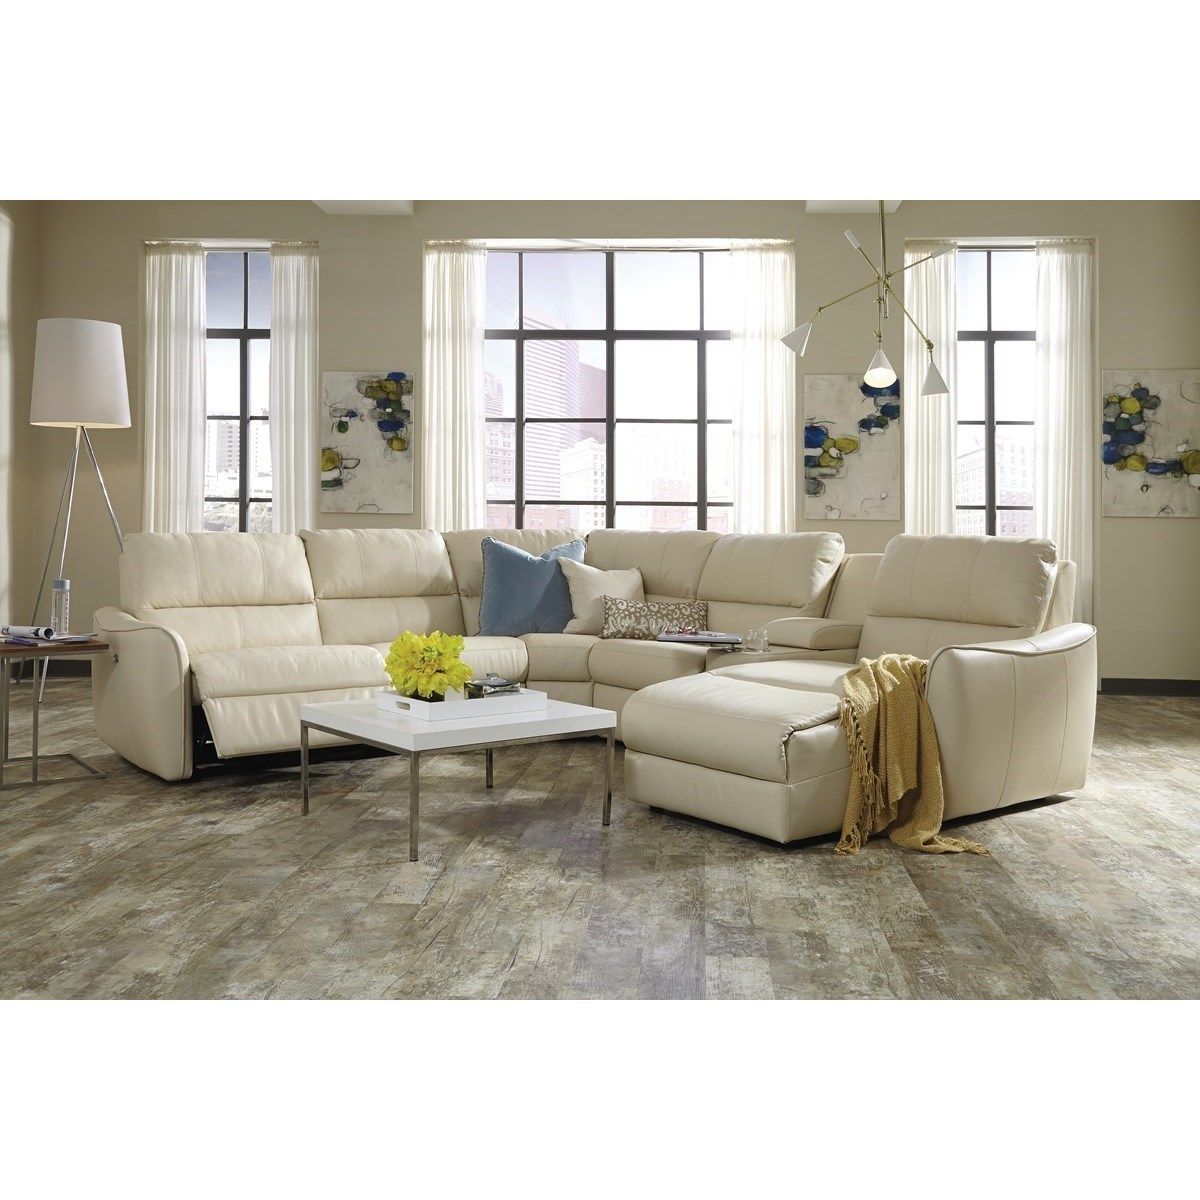 Palliser Arlo Contemporary Sectional Sofa With Chaise And Console Reeds Furniture Reclining Sectional Sofas